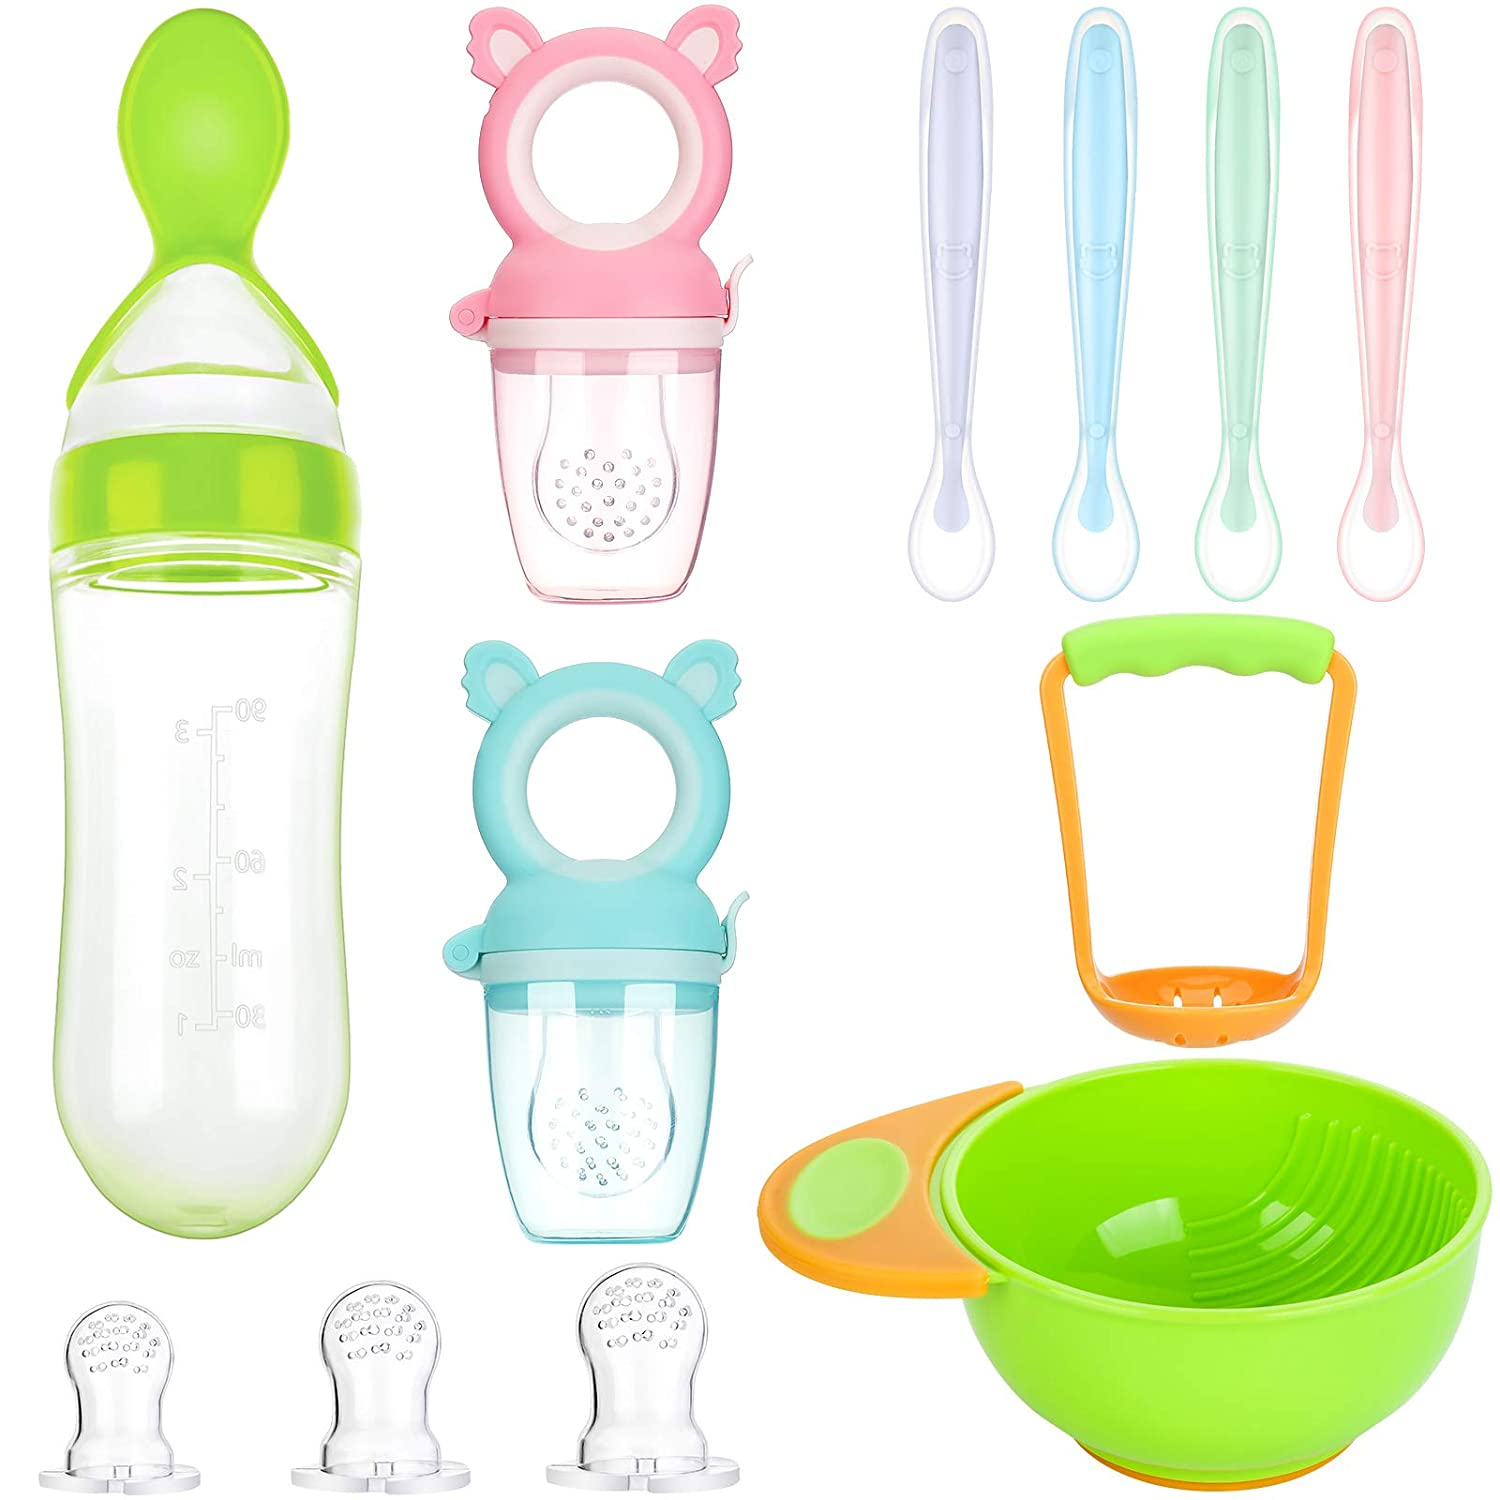 11 Pieces Food Feeder Set Include 2 Baby Teething Pacifier 3 Replacement Feeding Nipples 1 Food Feeder Bottle 1 Mash and Serve Bowl 4 Soft-Tip Silicone Baby Spoon for Baby First Stage Feeding